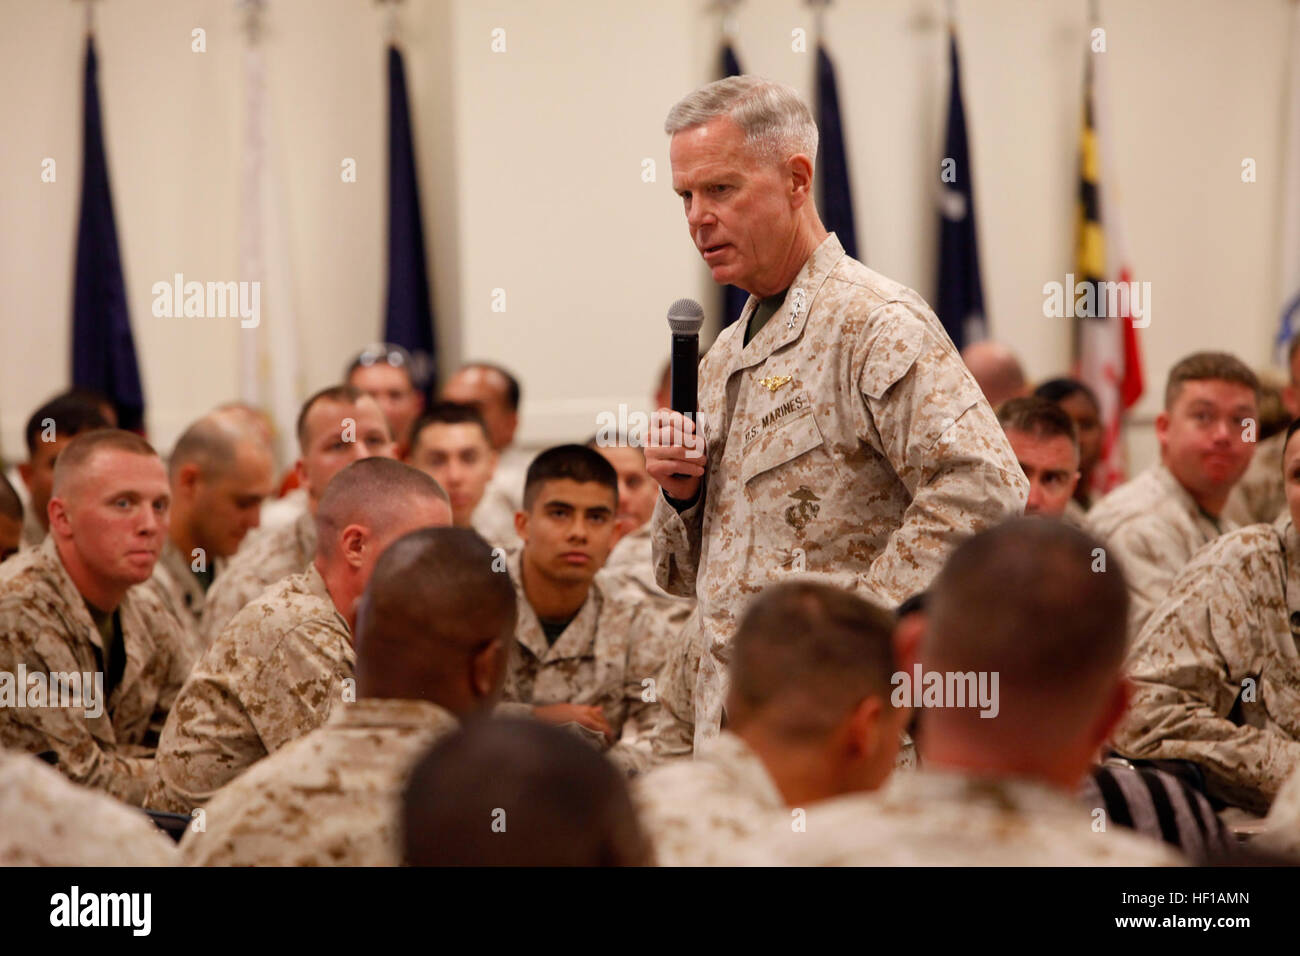 U.S. Marine Corps General James F. Amos, Commandant of the Marine Corps, answers questions from Department of Defense Stock Photo